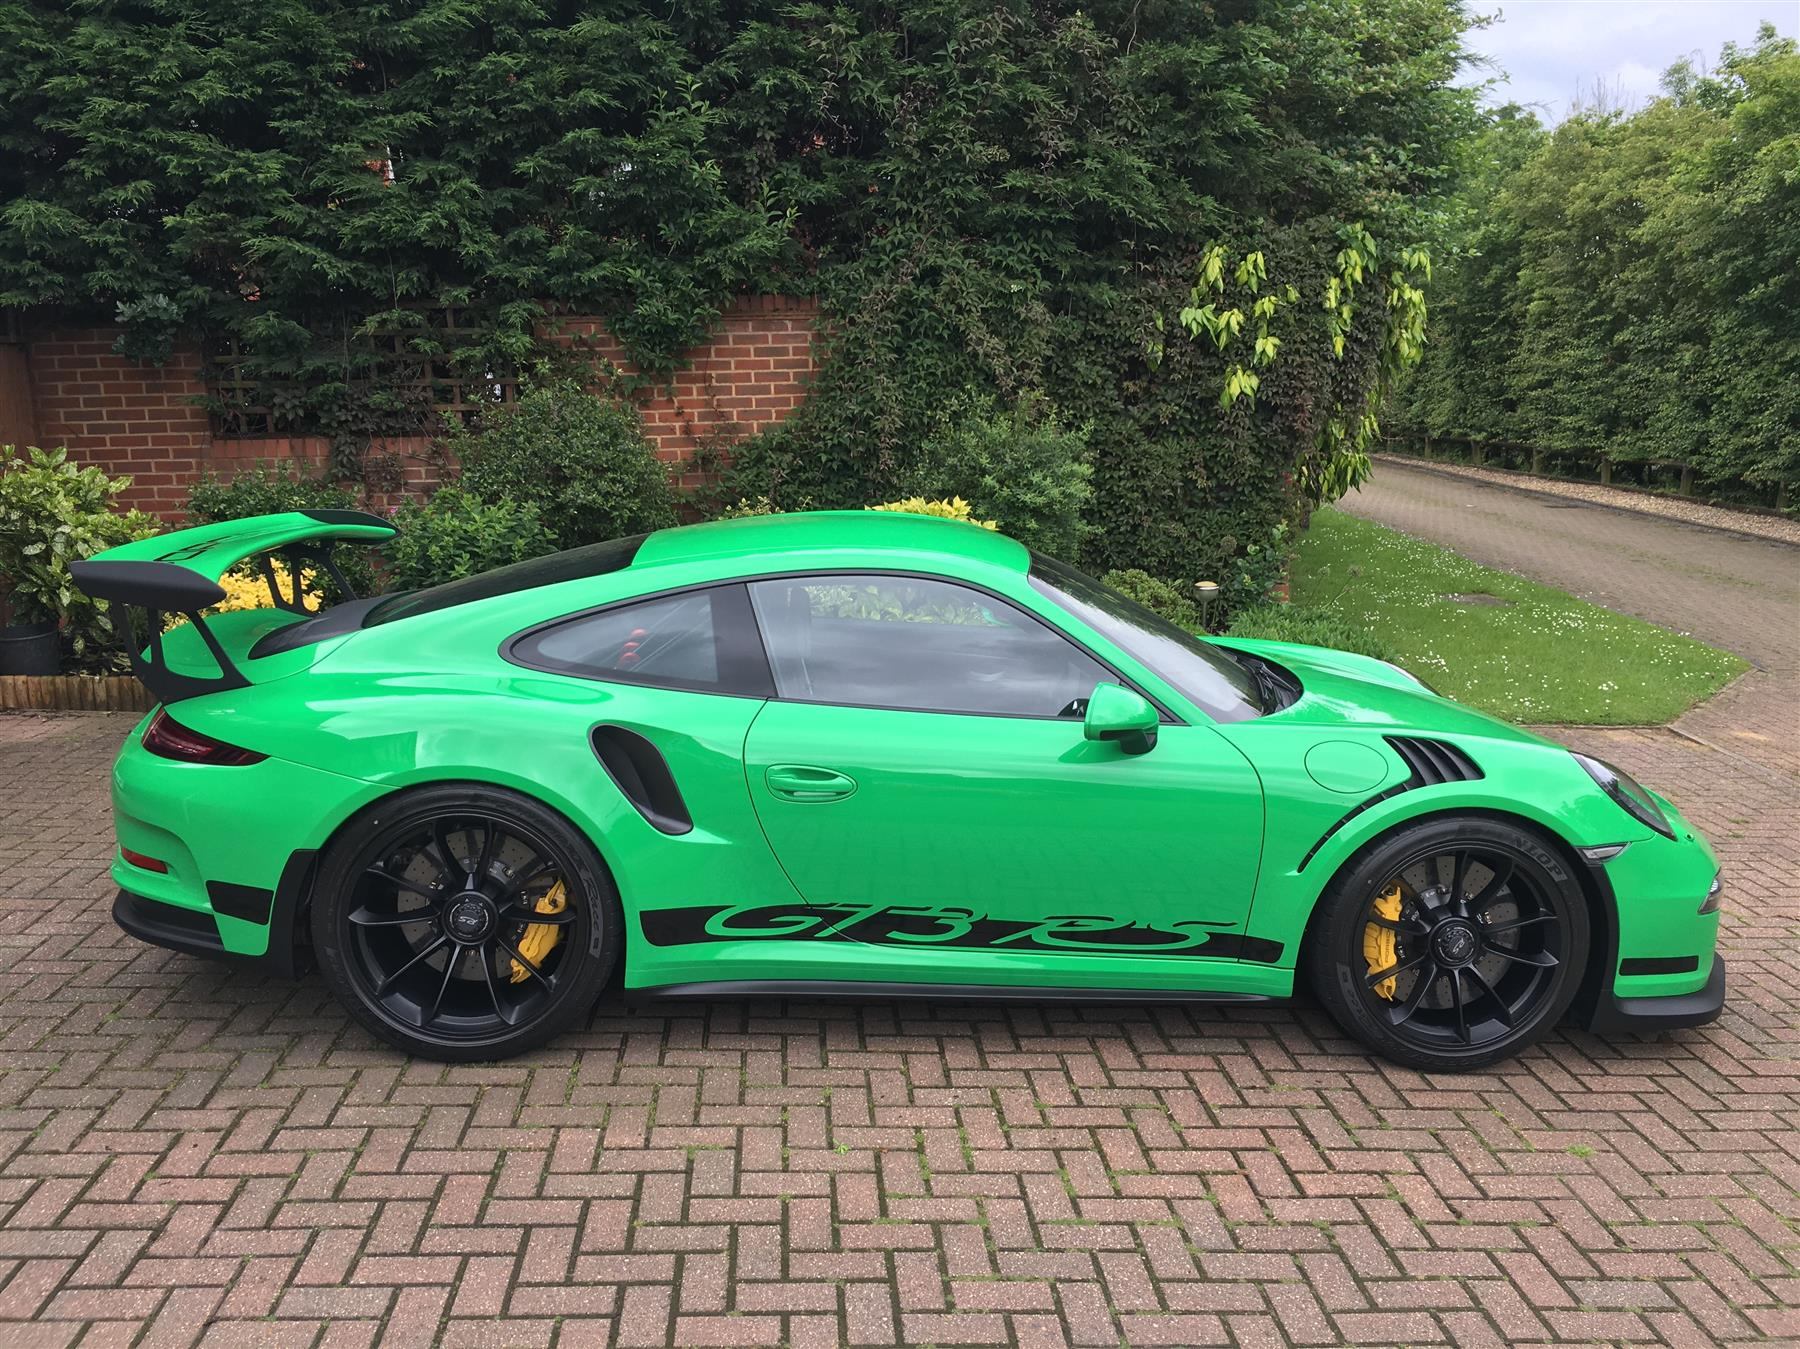 2016 Rs Green Porsche 911 Gt3 Rs For Sale At 321 000 In The Uk Gtspirit